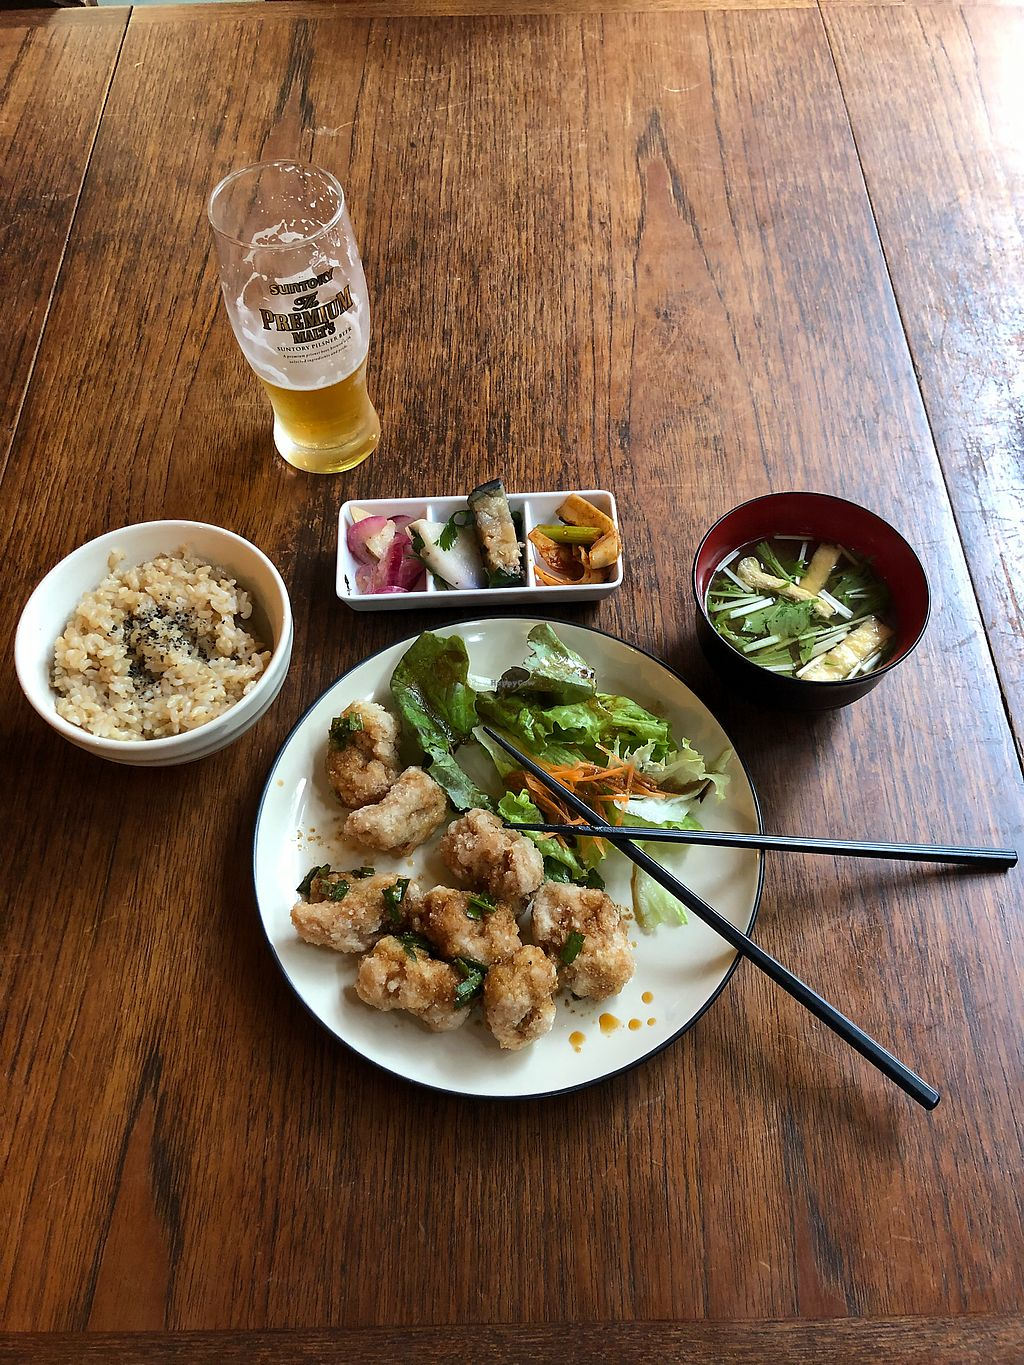 "Photo of Nagi Shokudo  by <a href=""/members/profile/Timbro"">Timbro</a> <br/>Delicious vegan mean. Nagi A with lunch beer! Perfect tokyo hole in the wall and gracious and welcoming server and chef!  <br/> April 14, 2018  - <a href='/contact/abuse/image/13435/385549'>Report</a>"